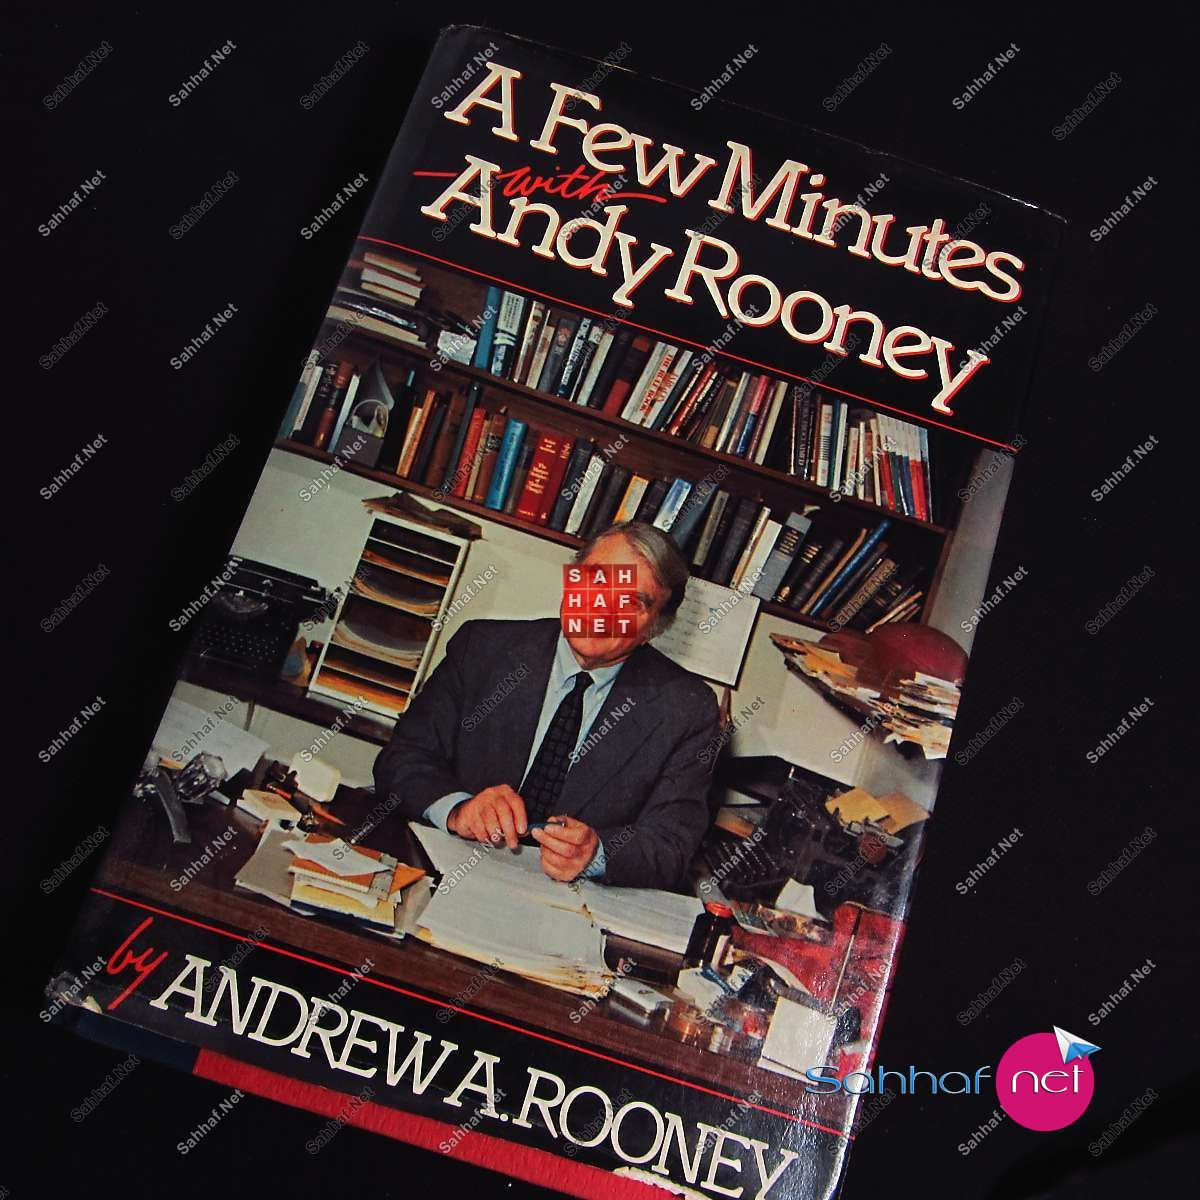 A FEW MINUTES WITH ANDY ROONEY – Andrew A.Rooney Kitap